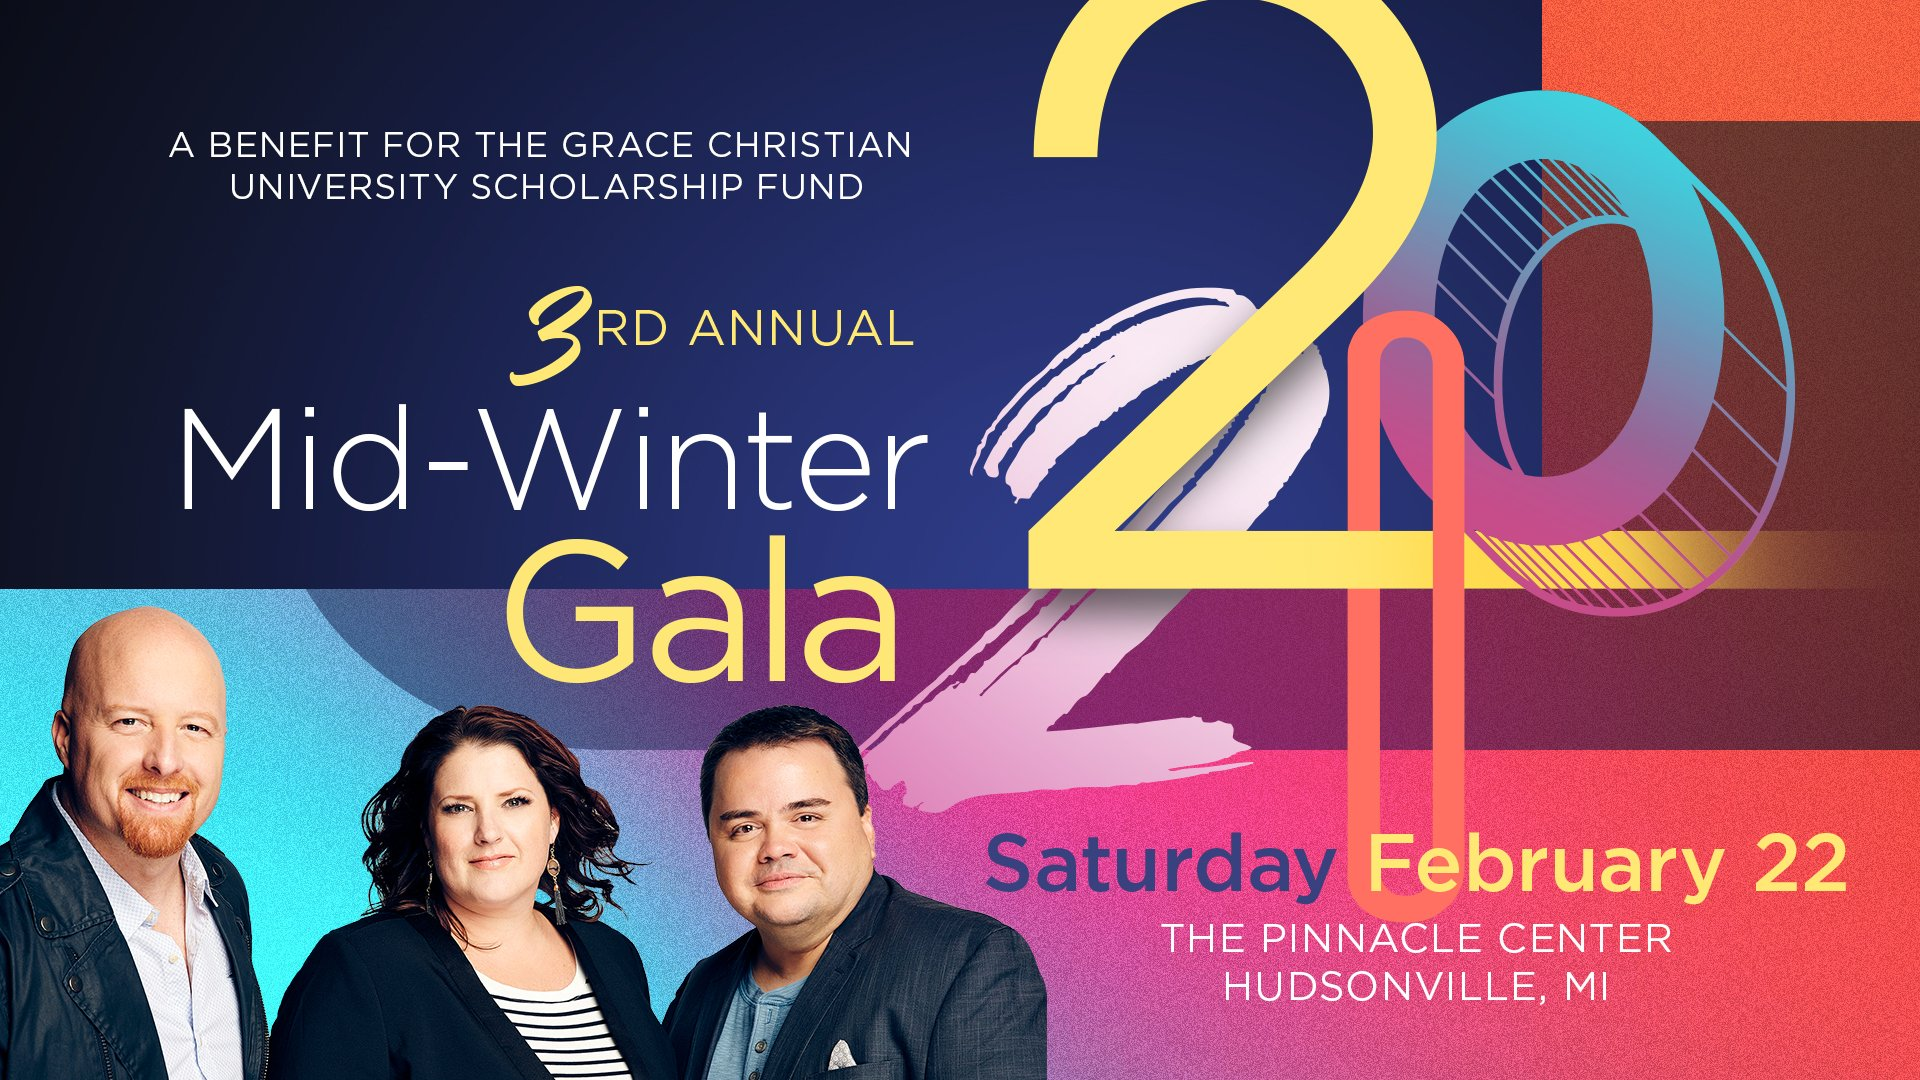 Mid-Winter Gala Event - Feb 22